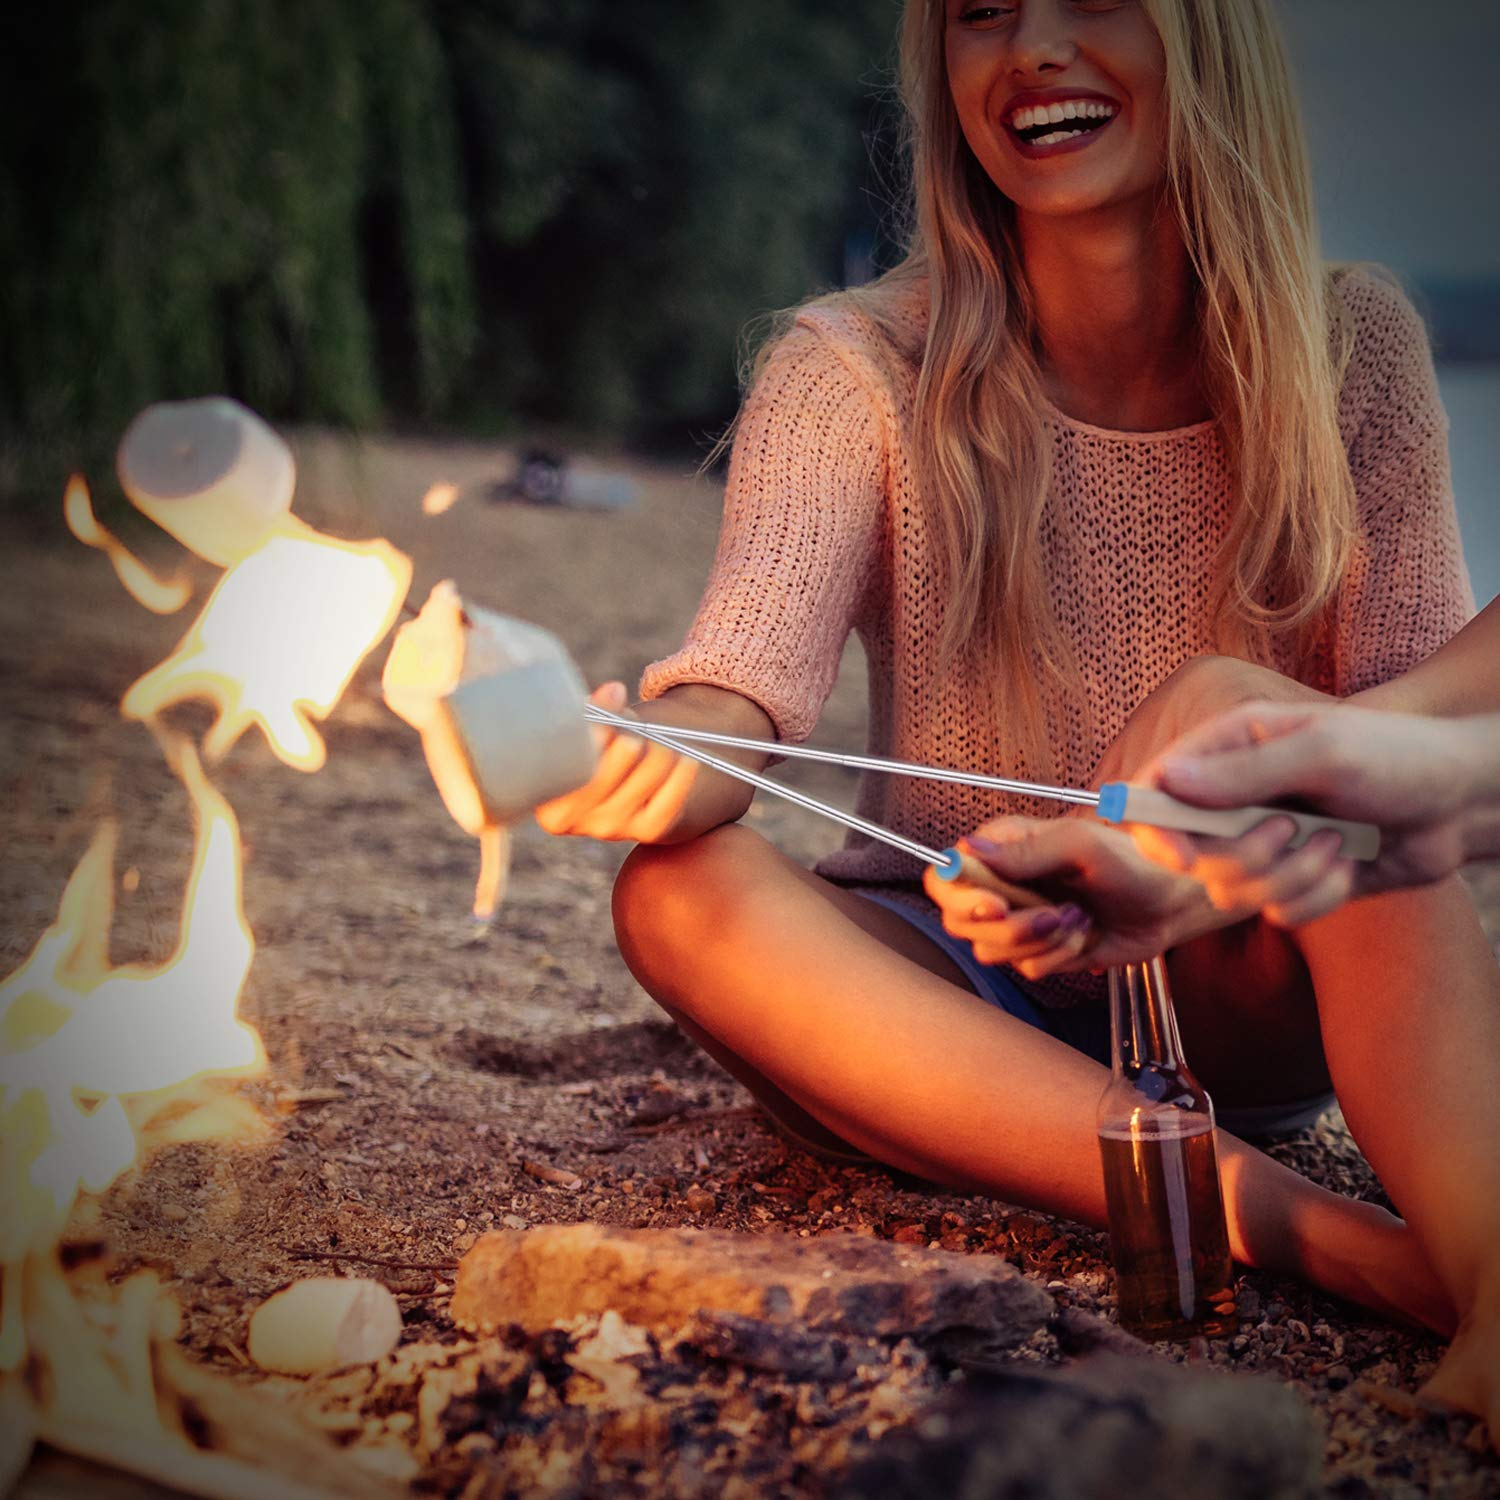 kubo Telescoping Marshmallow Roasting Sticks Set of 8 Hot Dog Forks&Smores Skewers Camping Cookware 32 Inch Campfire Roasting Sticks for Kids by kubo (Image #5)